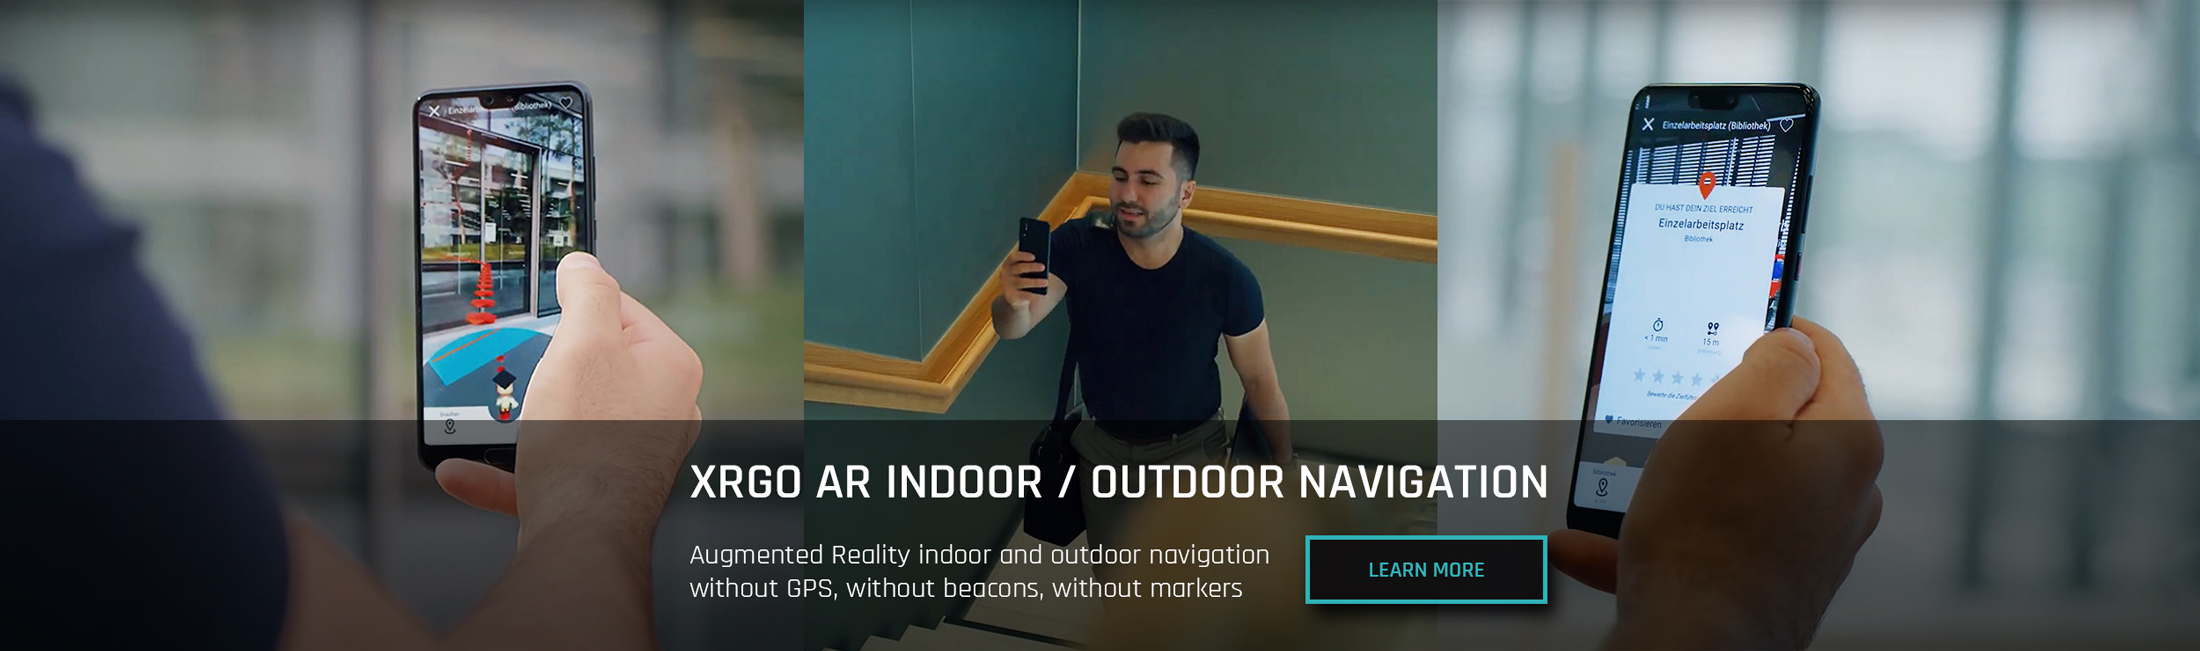 AR Indoor Navigation Microsoft Spatial Anchors